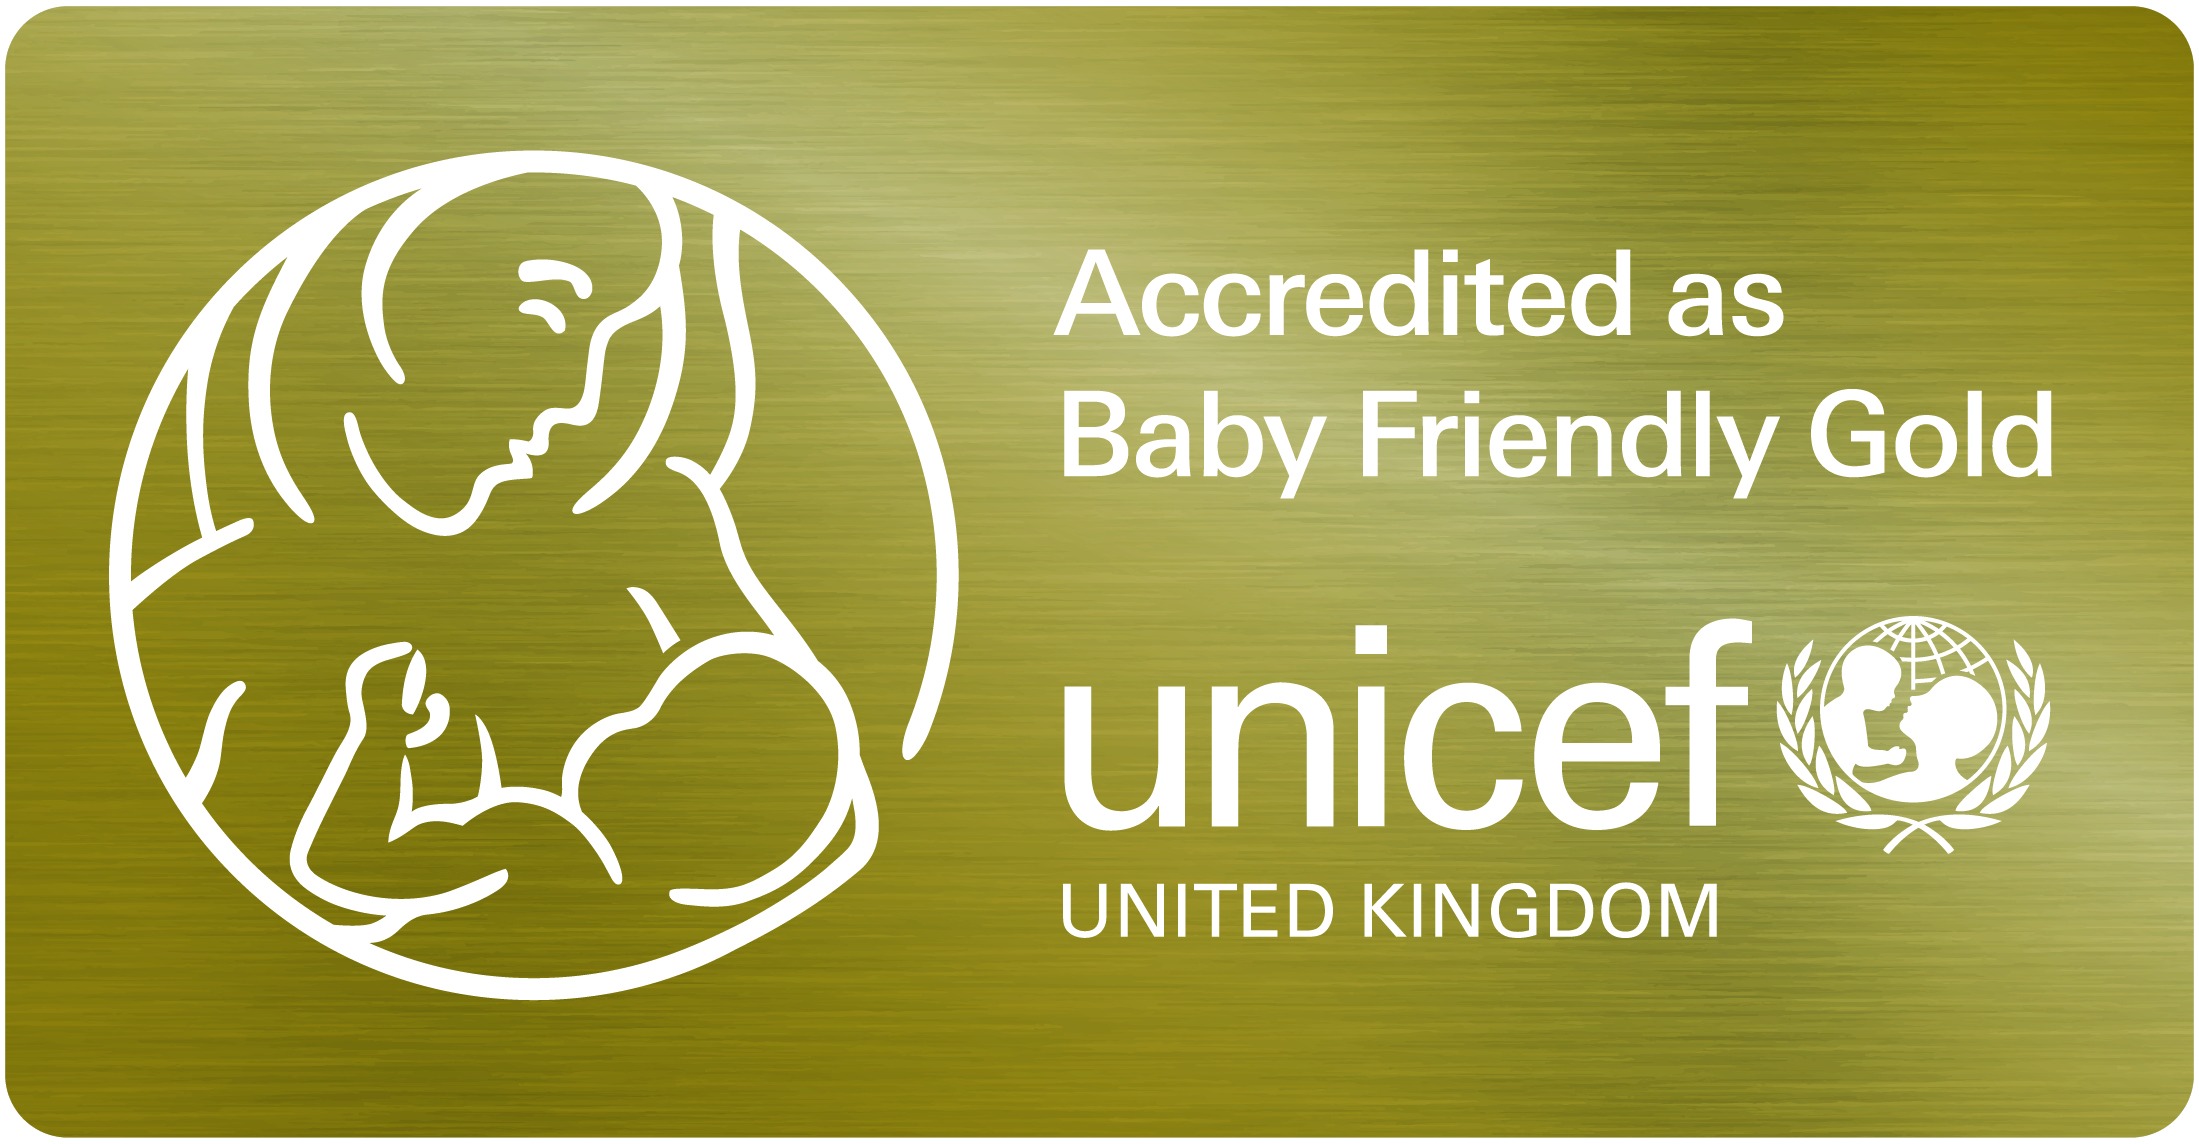 Accredited as Baby Friendly by Unicef logo